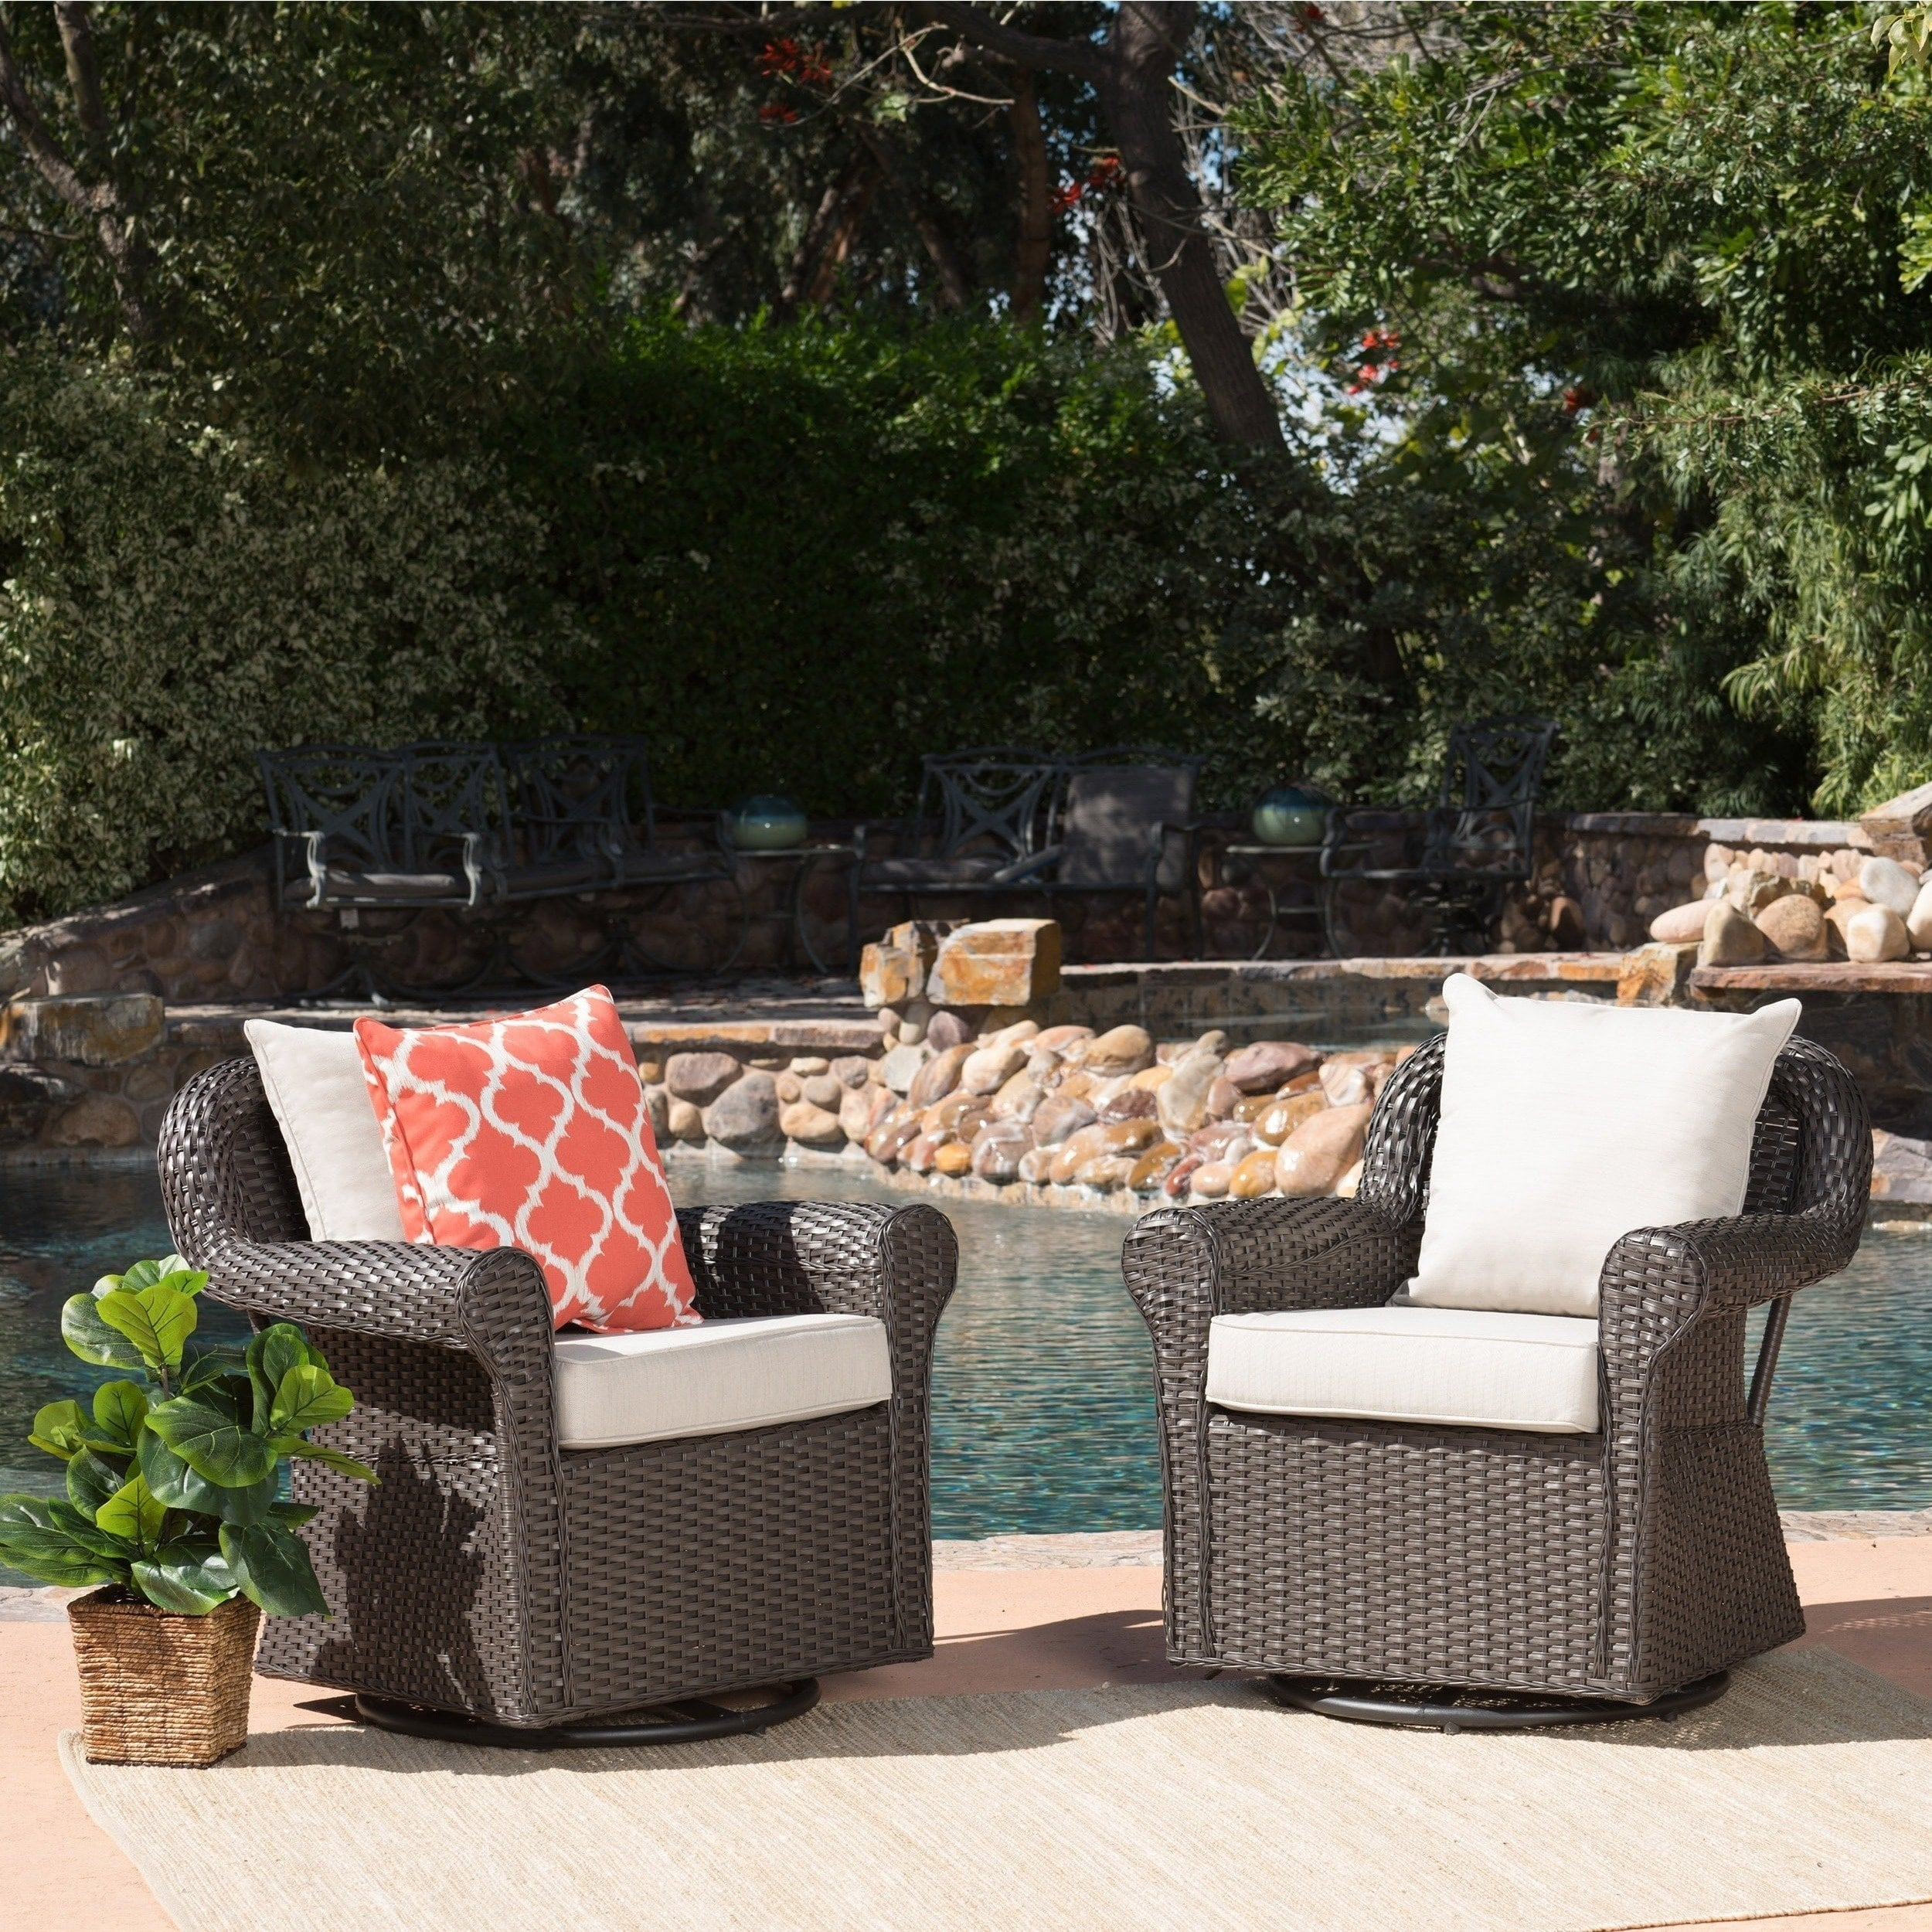 Christopher Knight Home Amaya Outdoor Wicker Swivel Rocking Chair with Cushion (Set of 2) by